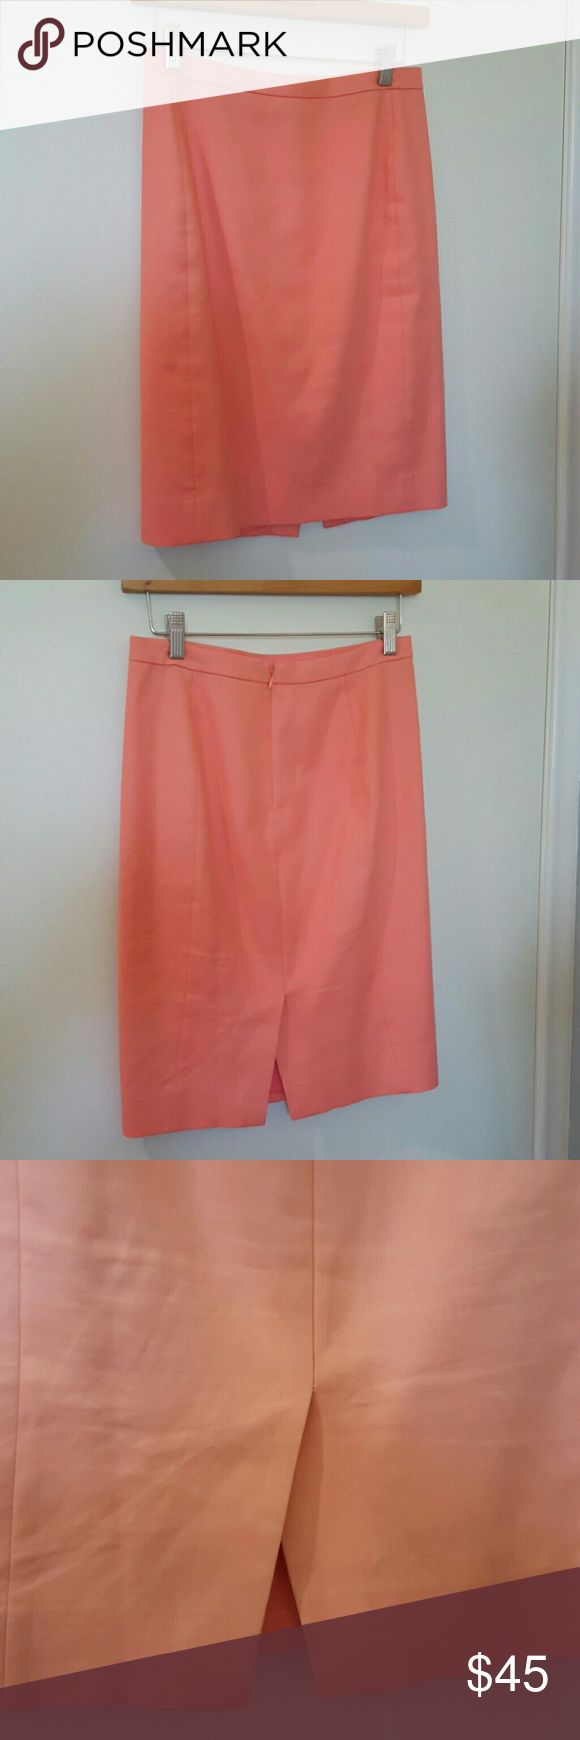 "J.Crew Light Coral Pencil Skirt 00 J.Crew cotton pencil skirt.  Light coral.  100% cotton, fully lined. Size 00 or women's XS.  Perfect spring and summer skirt for the office!  This light pinkish coral color is gorgeous! Good condition with slight wear. Back zip and vent at hem.  Hits at knee.  Measures 26.5"" waist, 34"" hip, 21.5"" length. J. Crew Skirts Pencil"